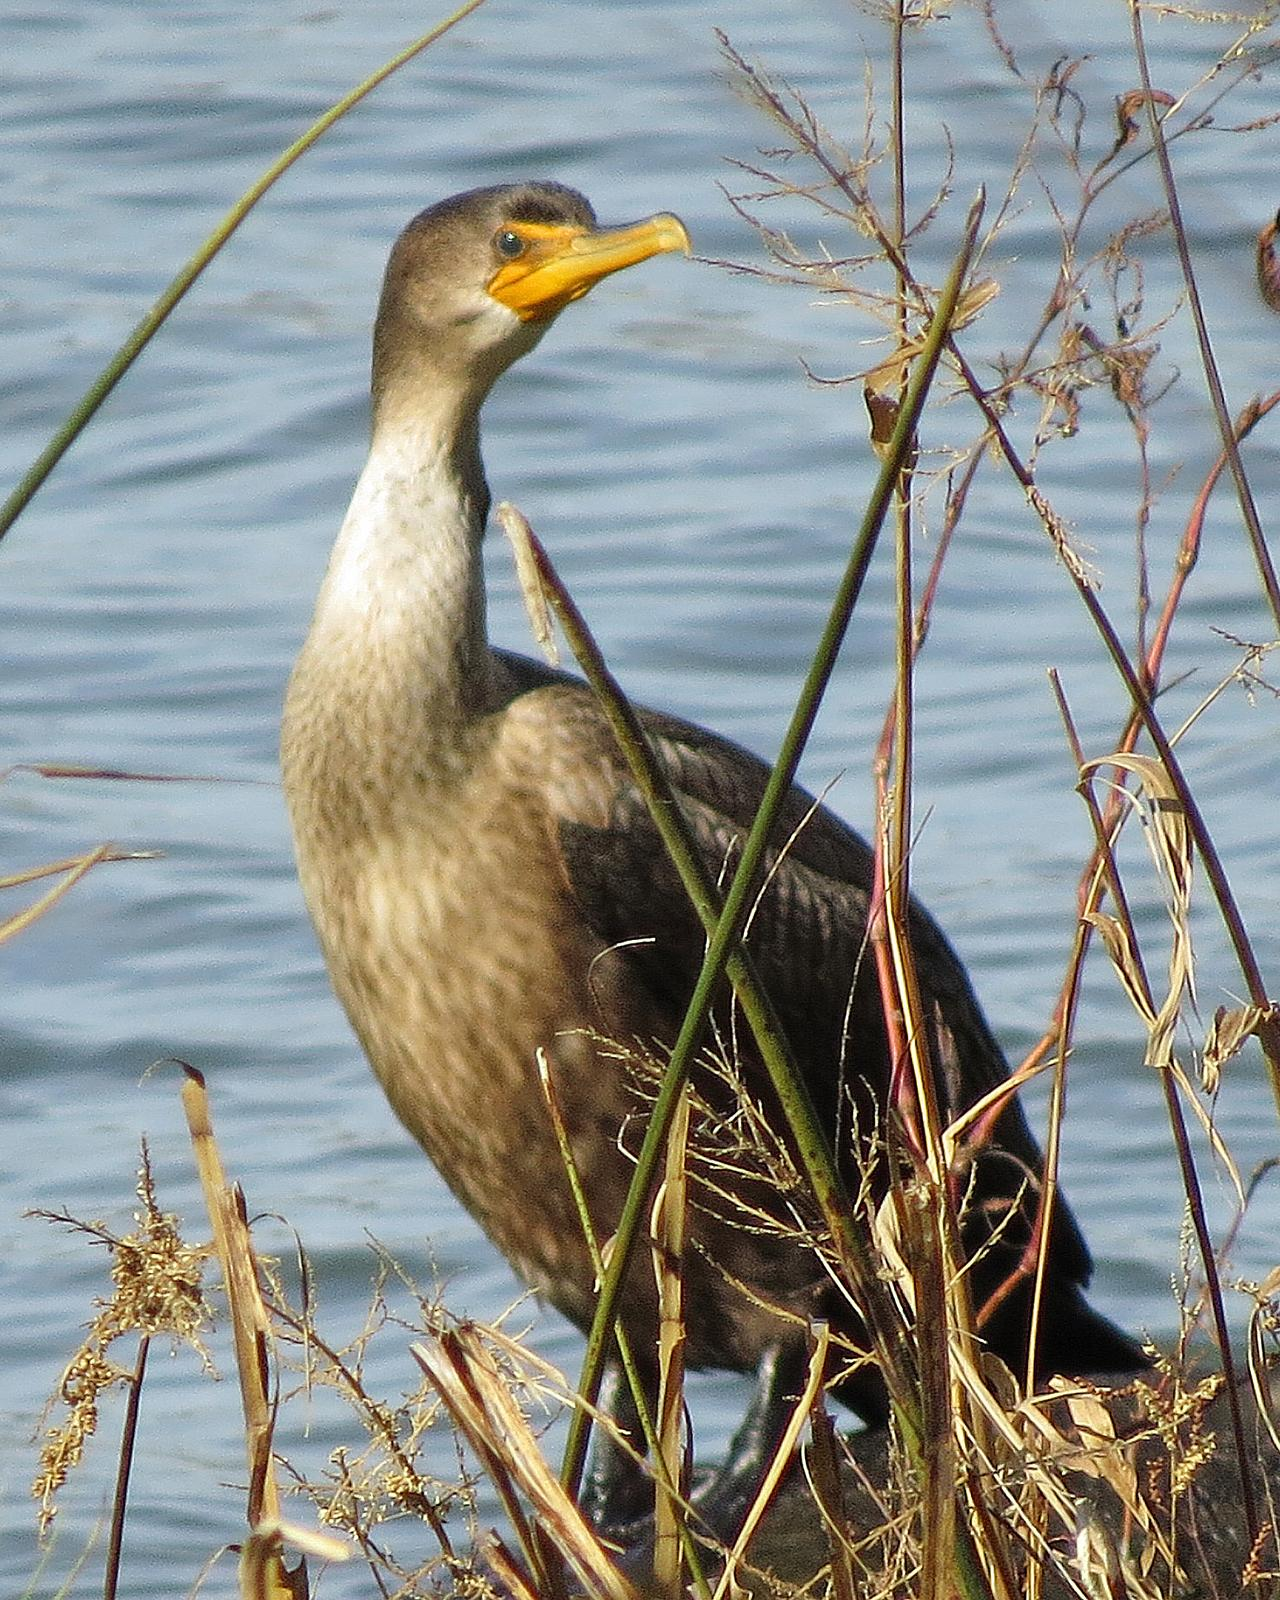 Double-crested Cormorant Photo by Kelly Preheim